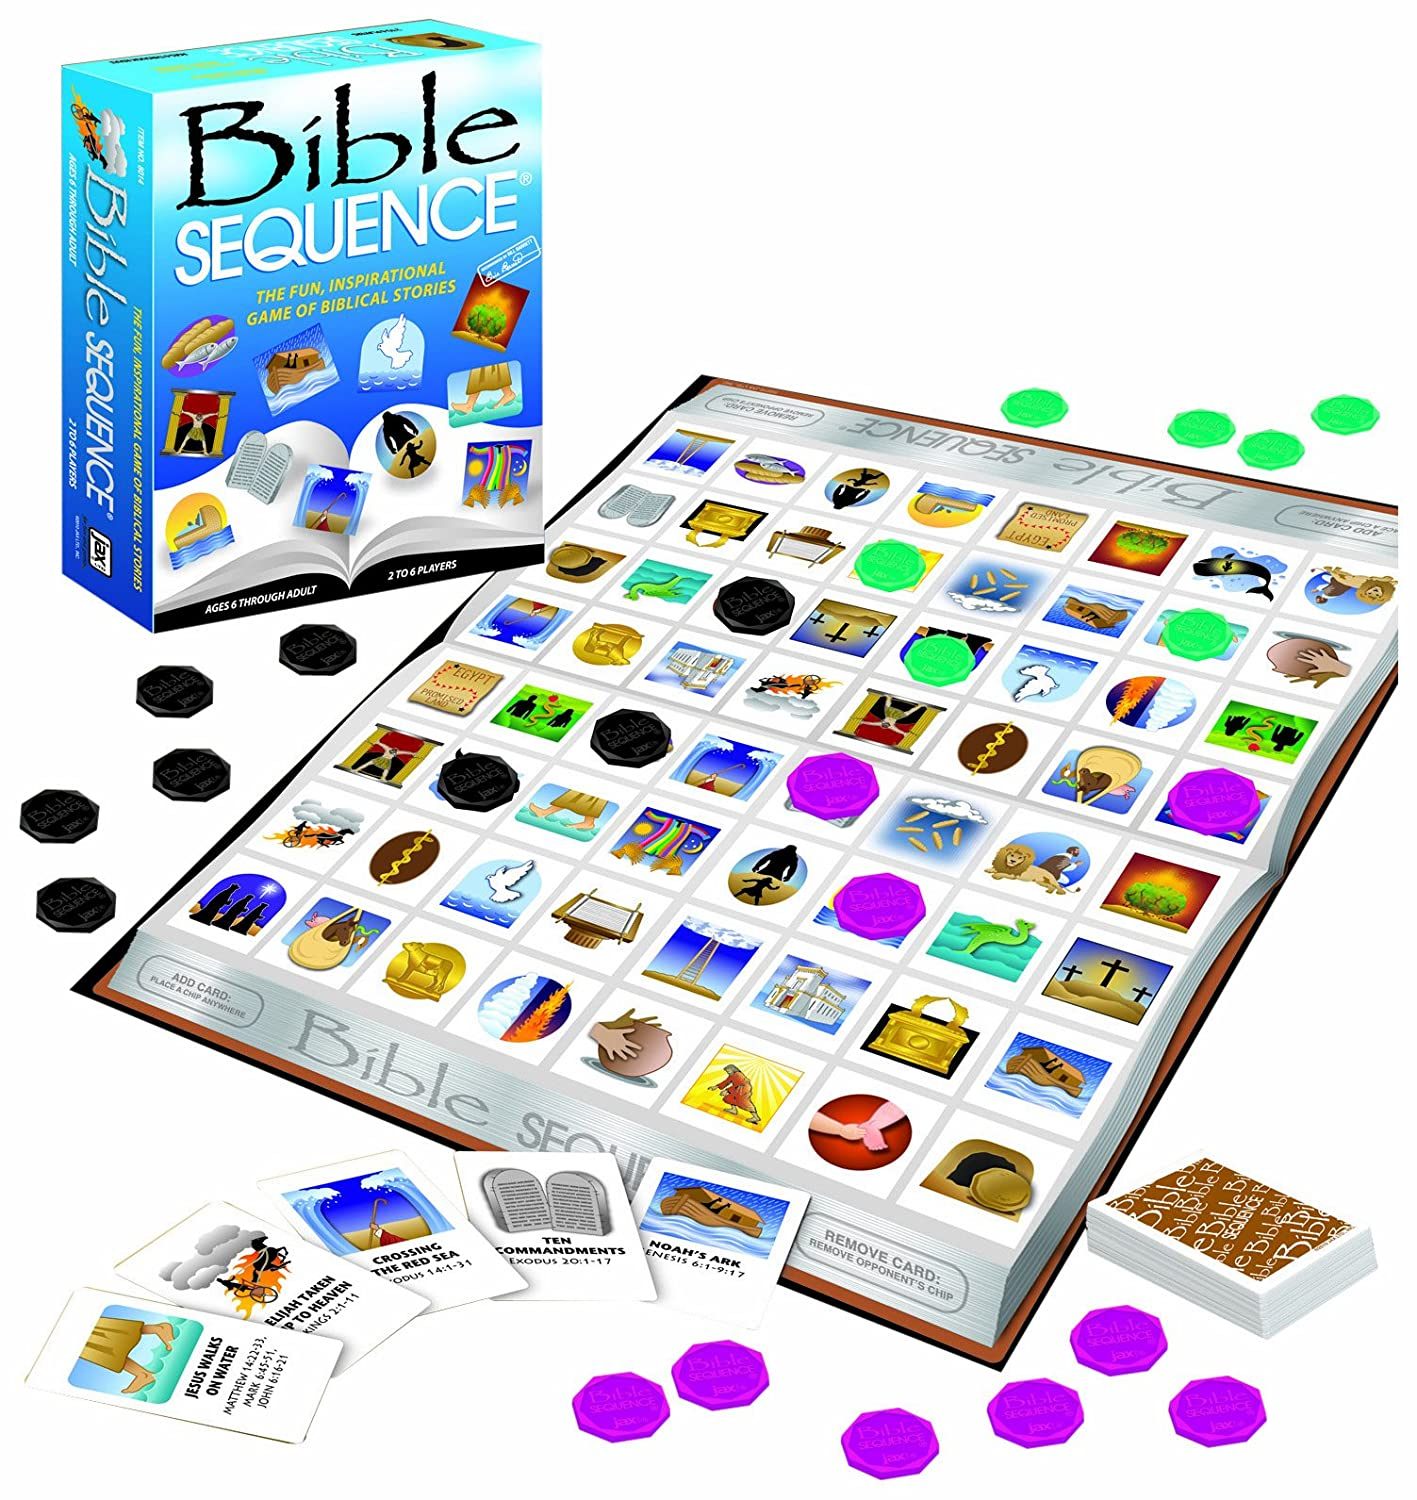 Bible Sequence by Jax: Amazon.es: Juguetes y juegos